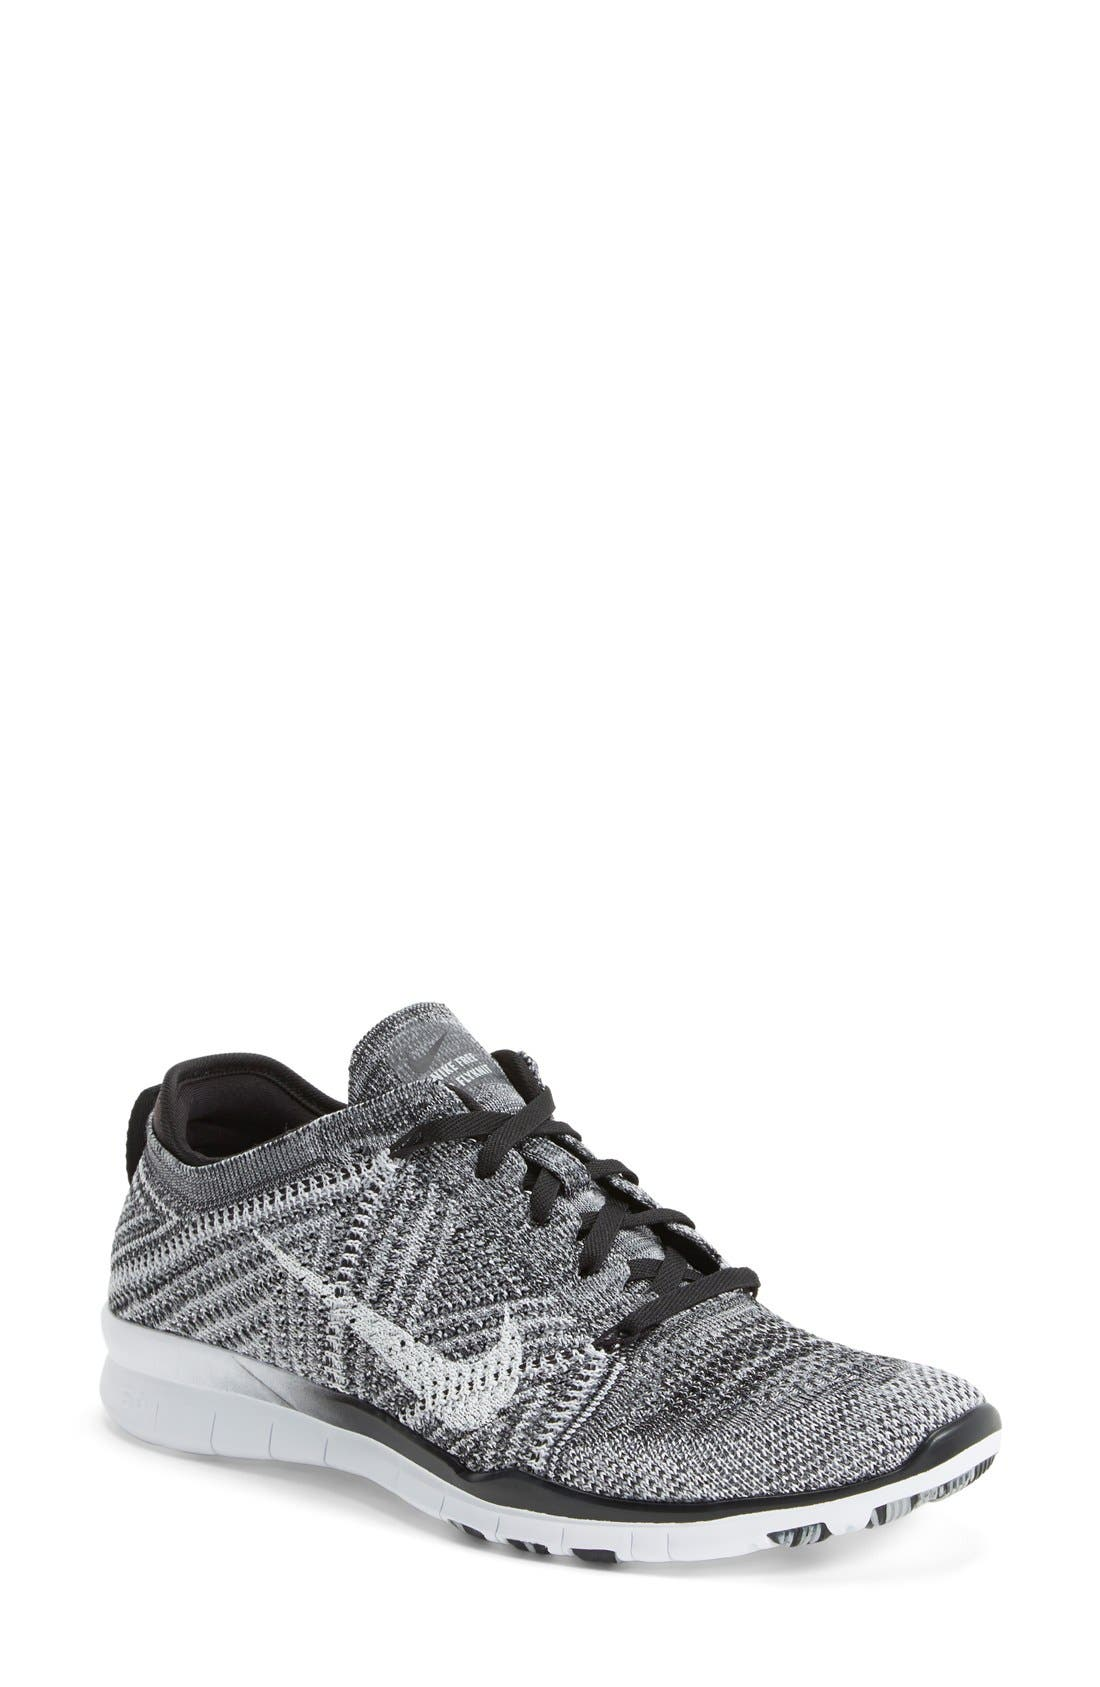 'Free Flyknit 5.0 TR' Training Shoe, Main, color, 001